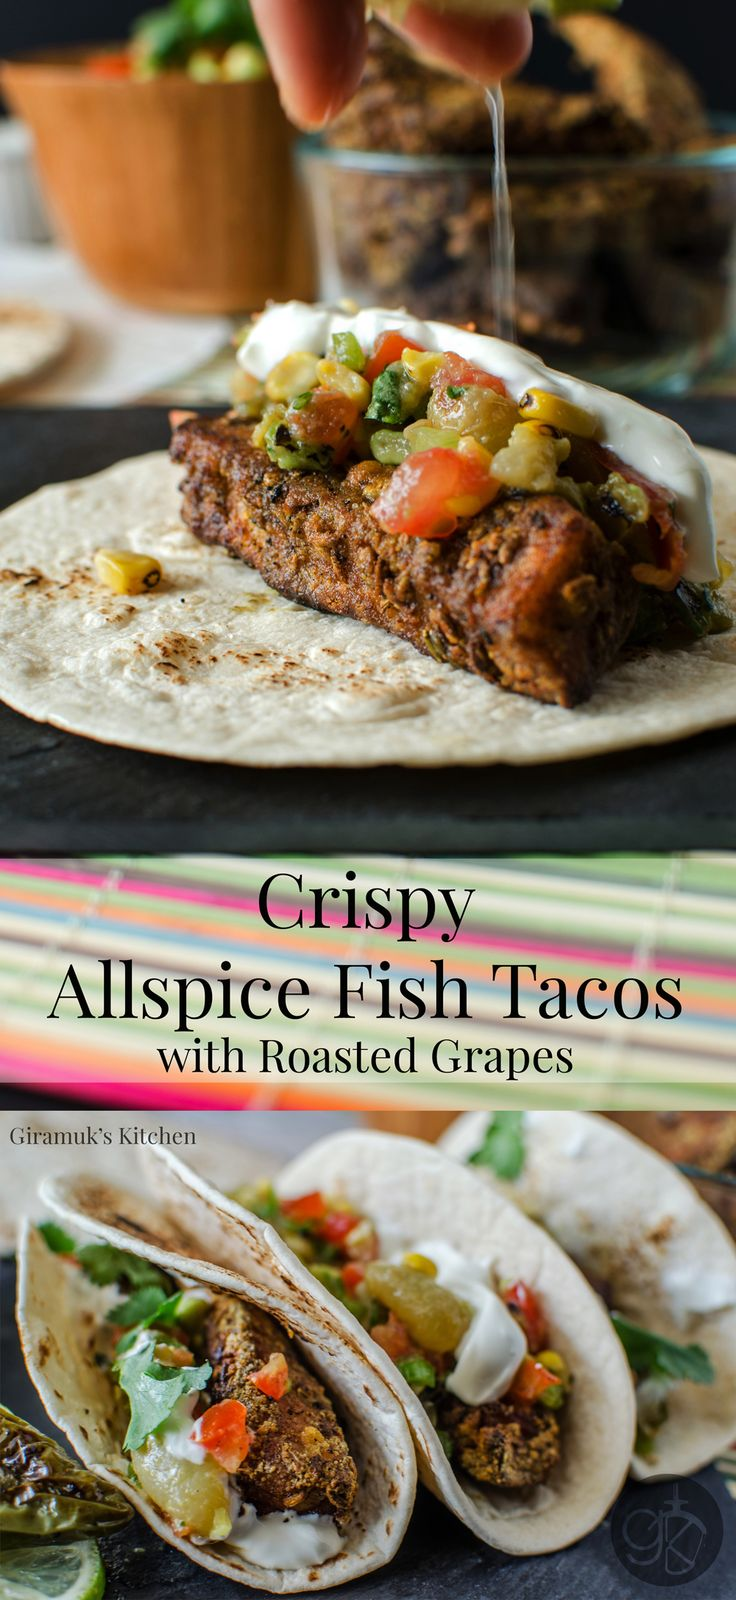 Crispy Allspice Fish Tacos with Roasted Grapes